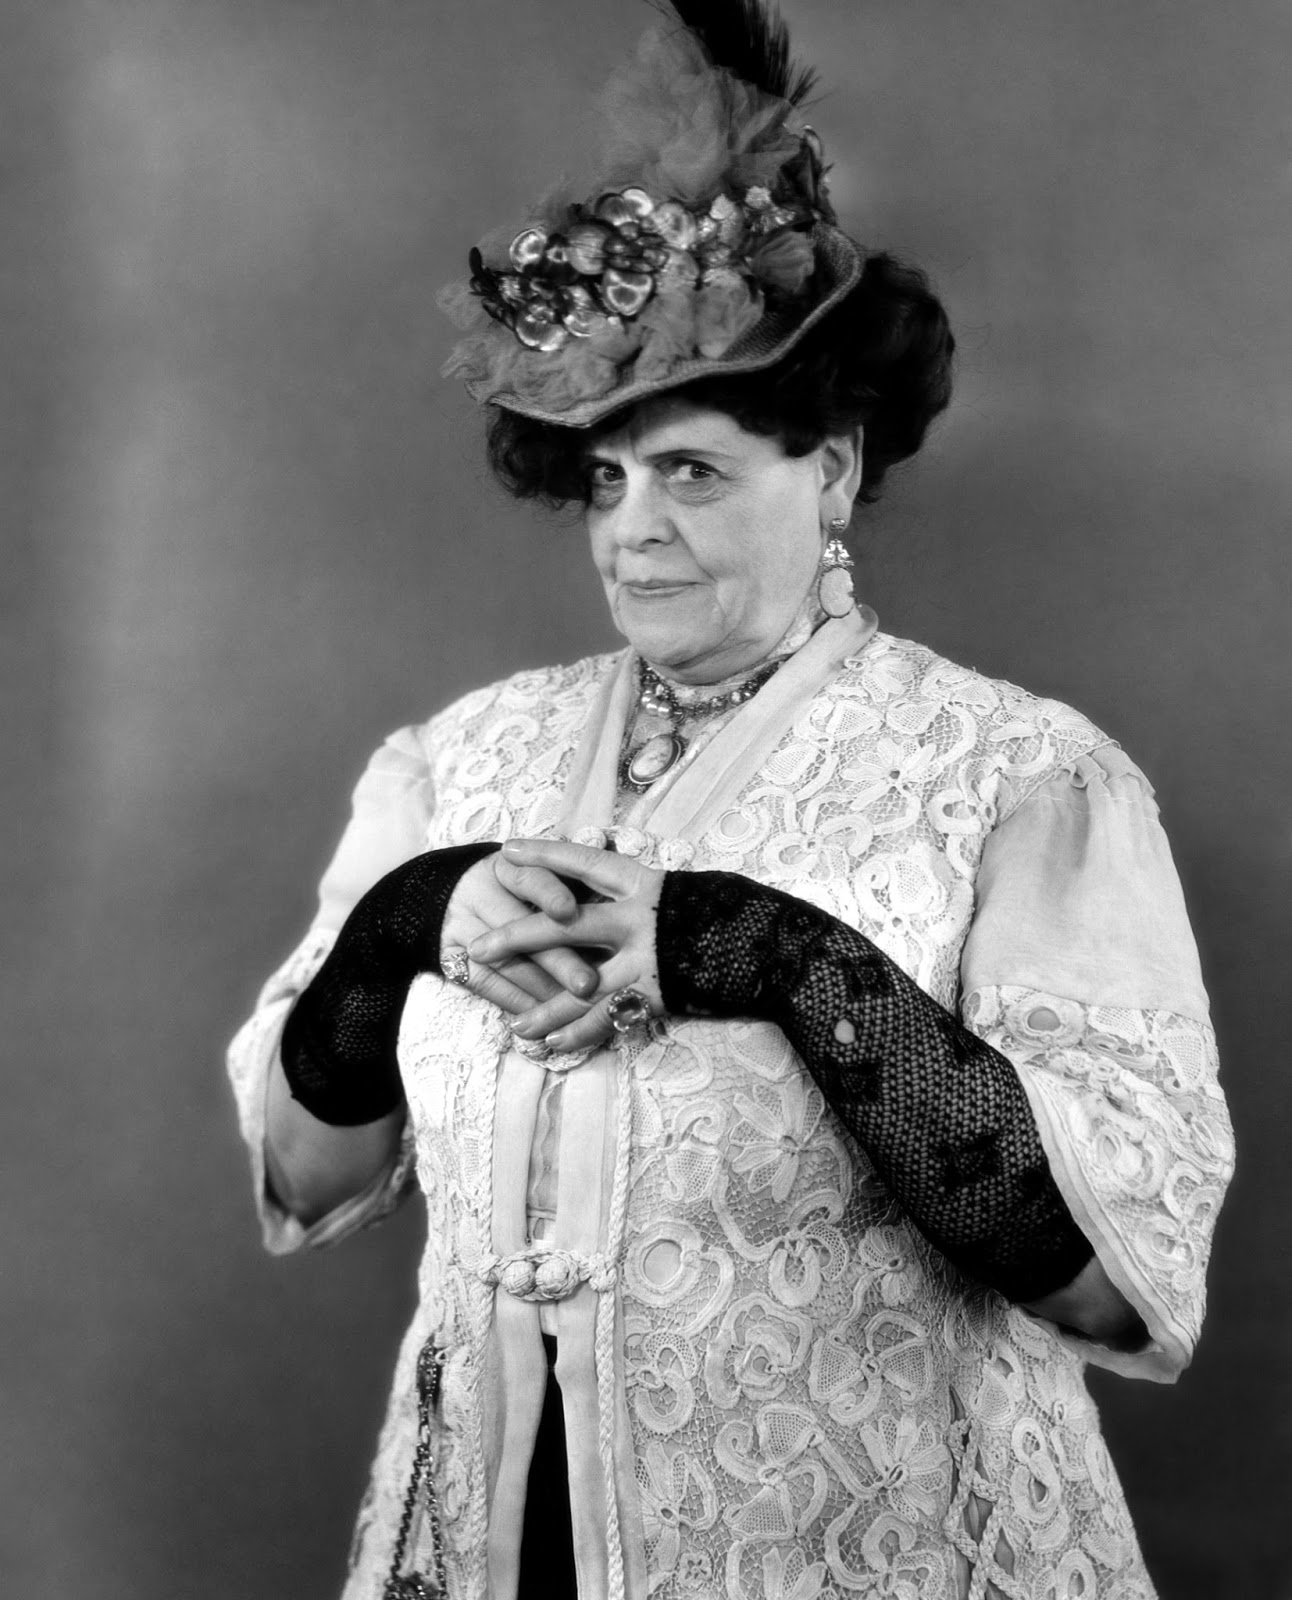 Cleavage Marie Dressler naked photo 2017